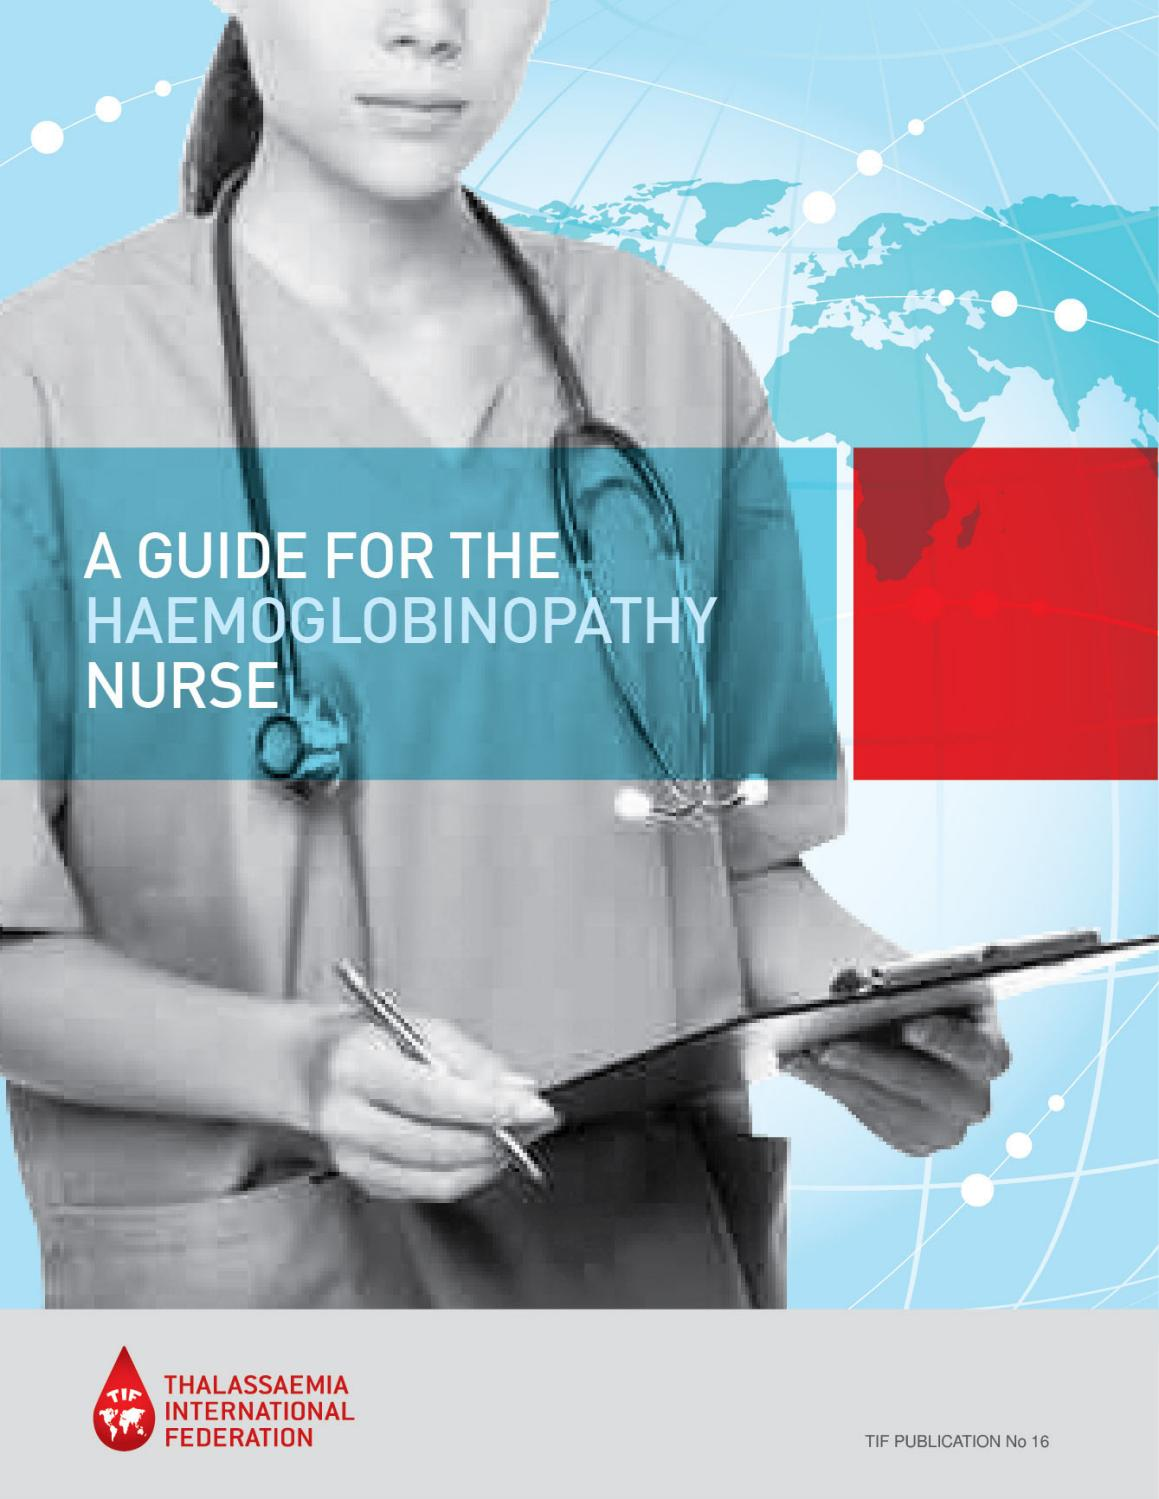 A Guide for the Haemoglobinopathy Nurse (2013) - English by